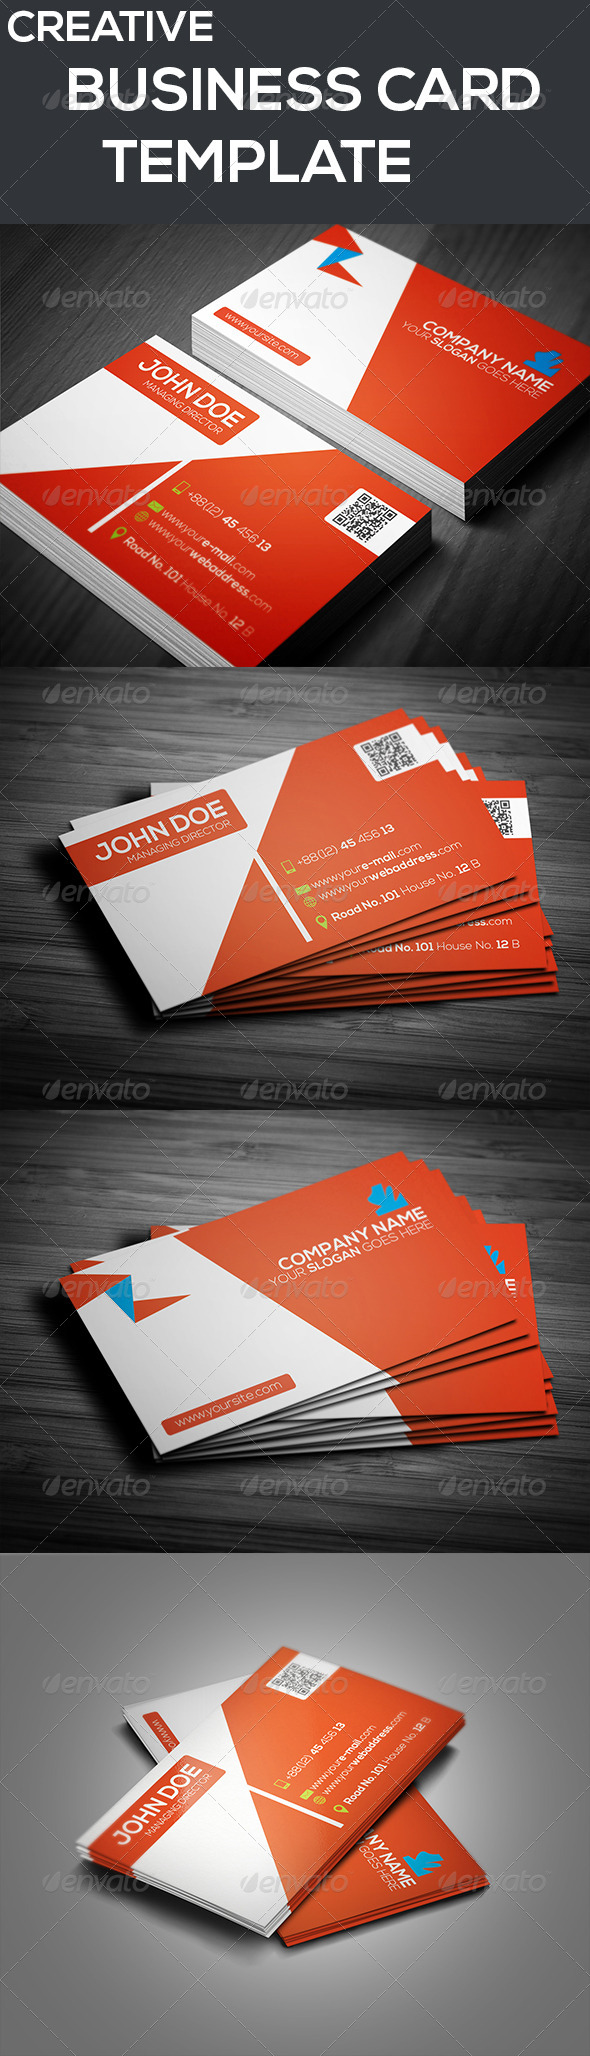 GraphicRiver Creative Business Card Template 7258349